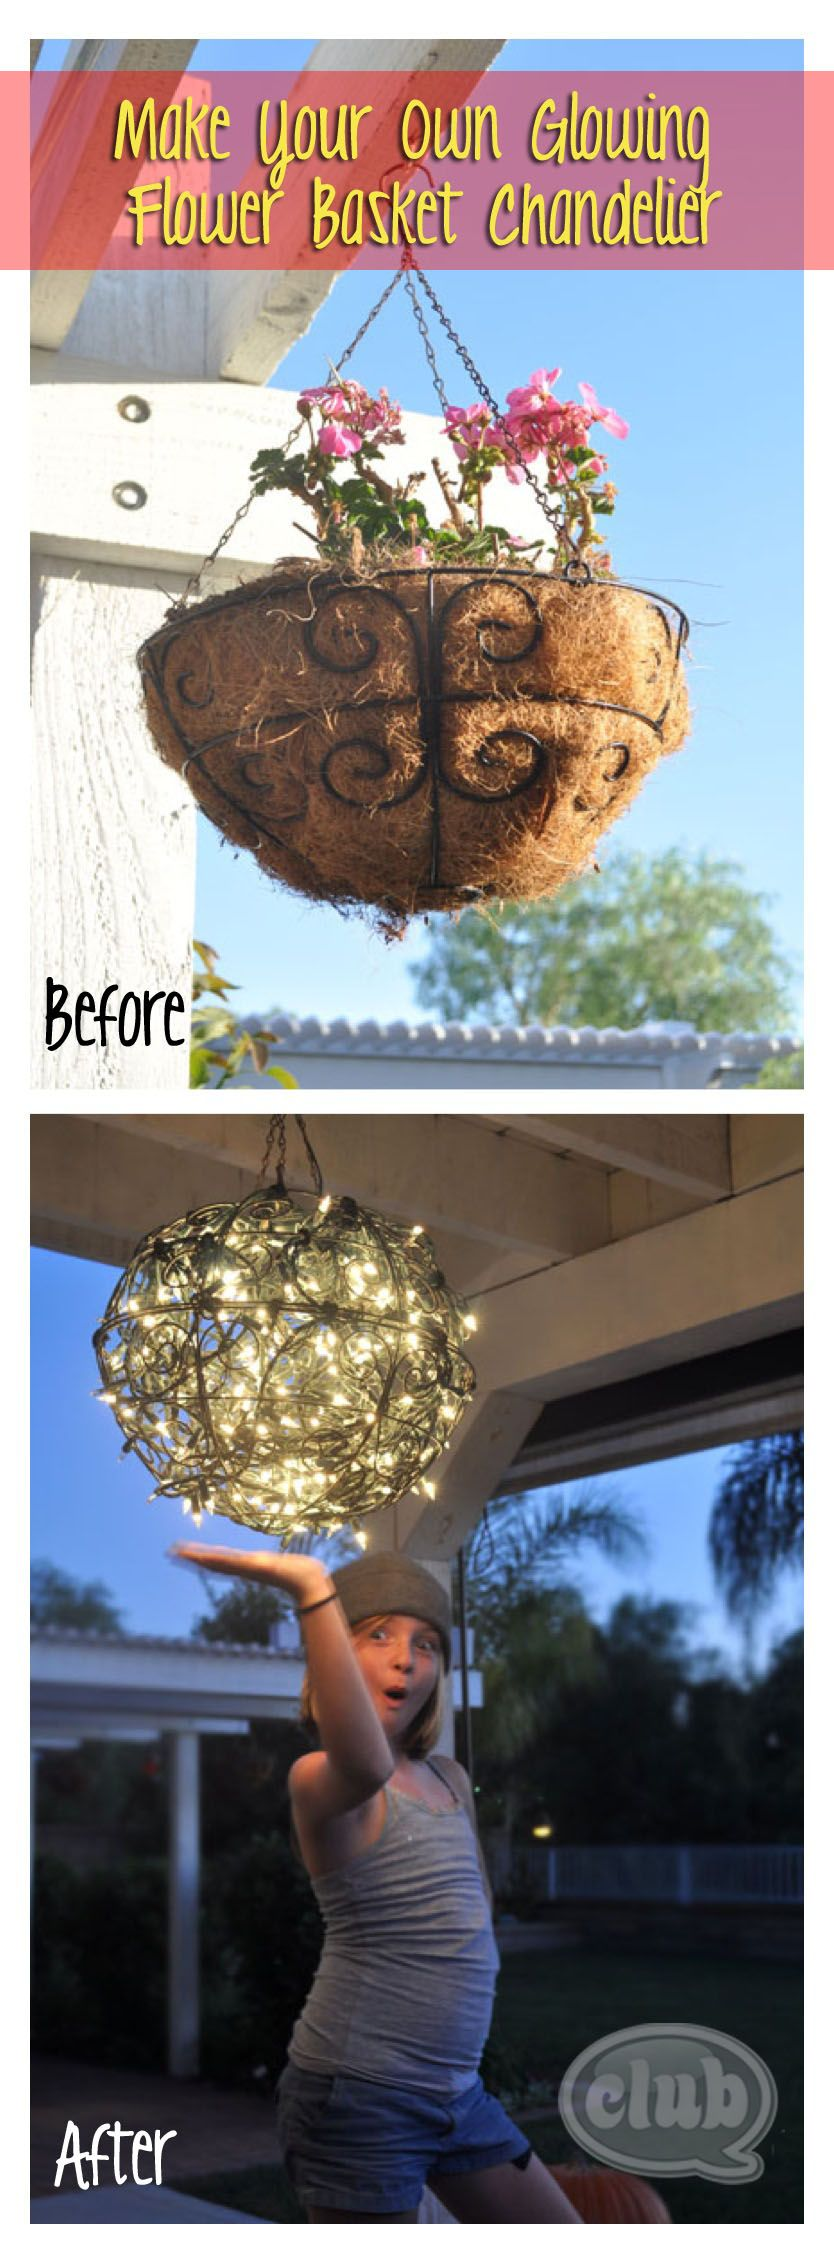 Flower Basket Chandelier Diy Turn 2 Wire Frame Baskets Wiring Security Lights Back Deck Pipe Cleaners And Xmas Into A Cool Glowing